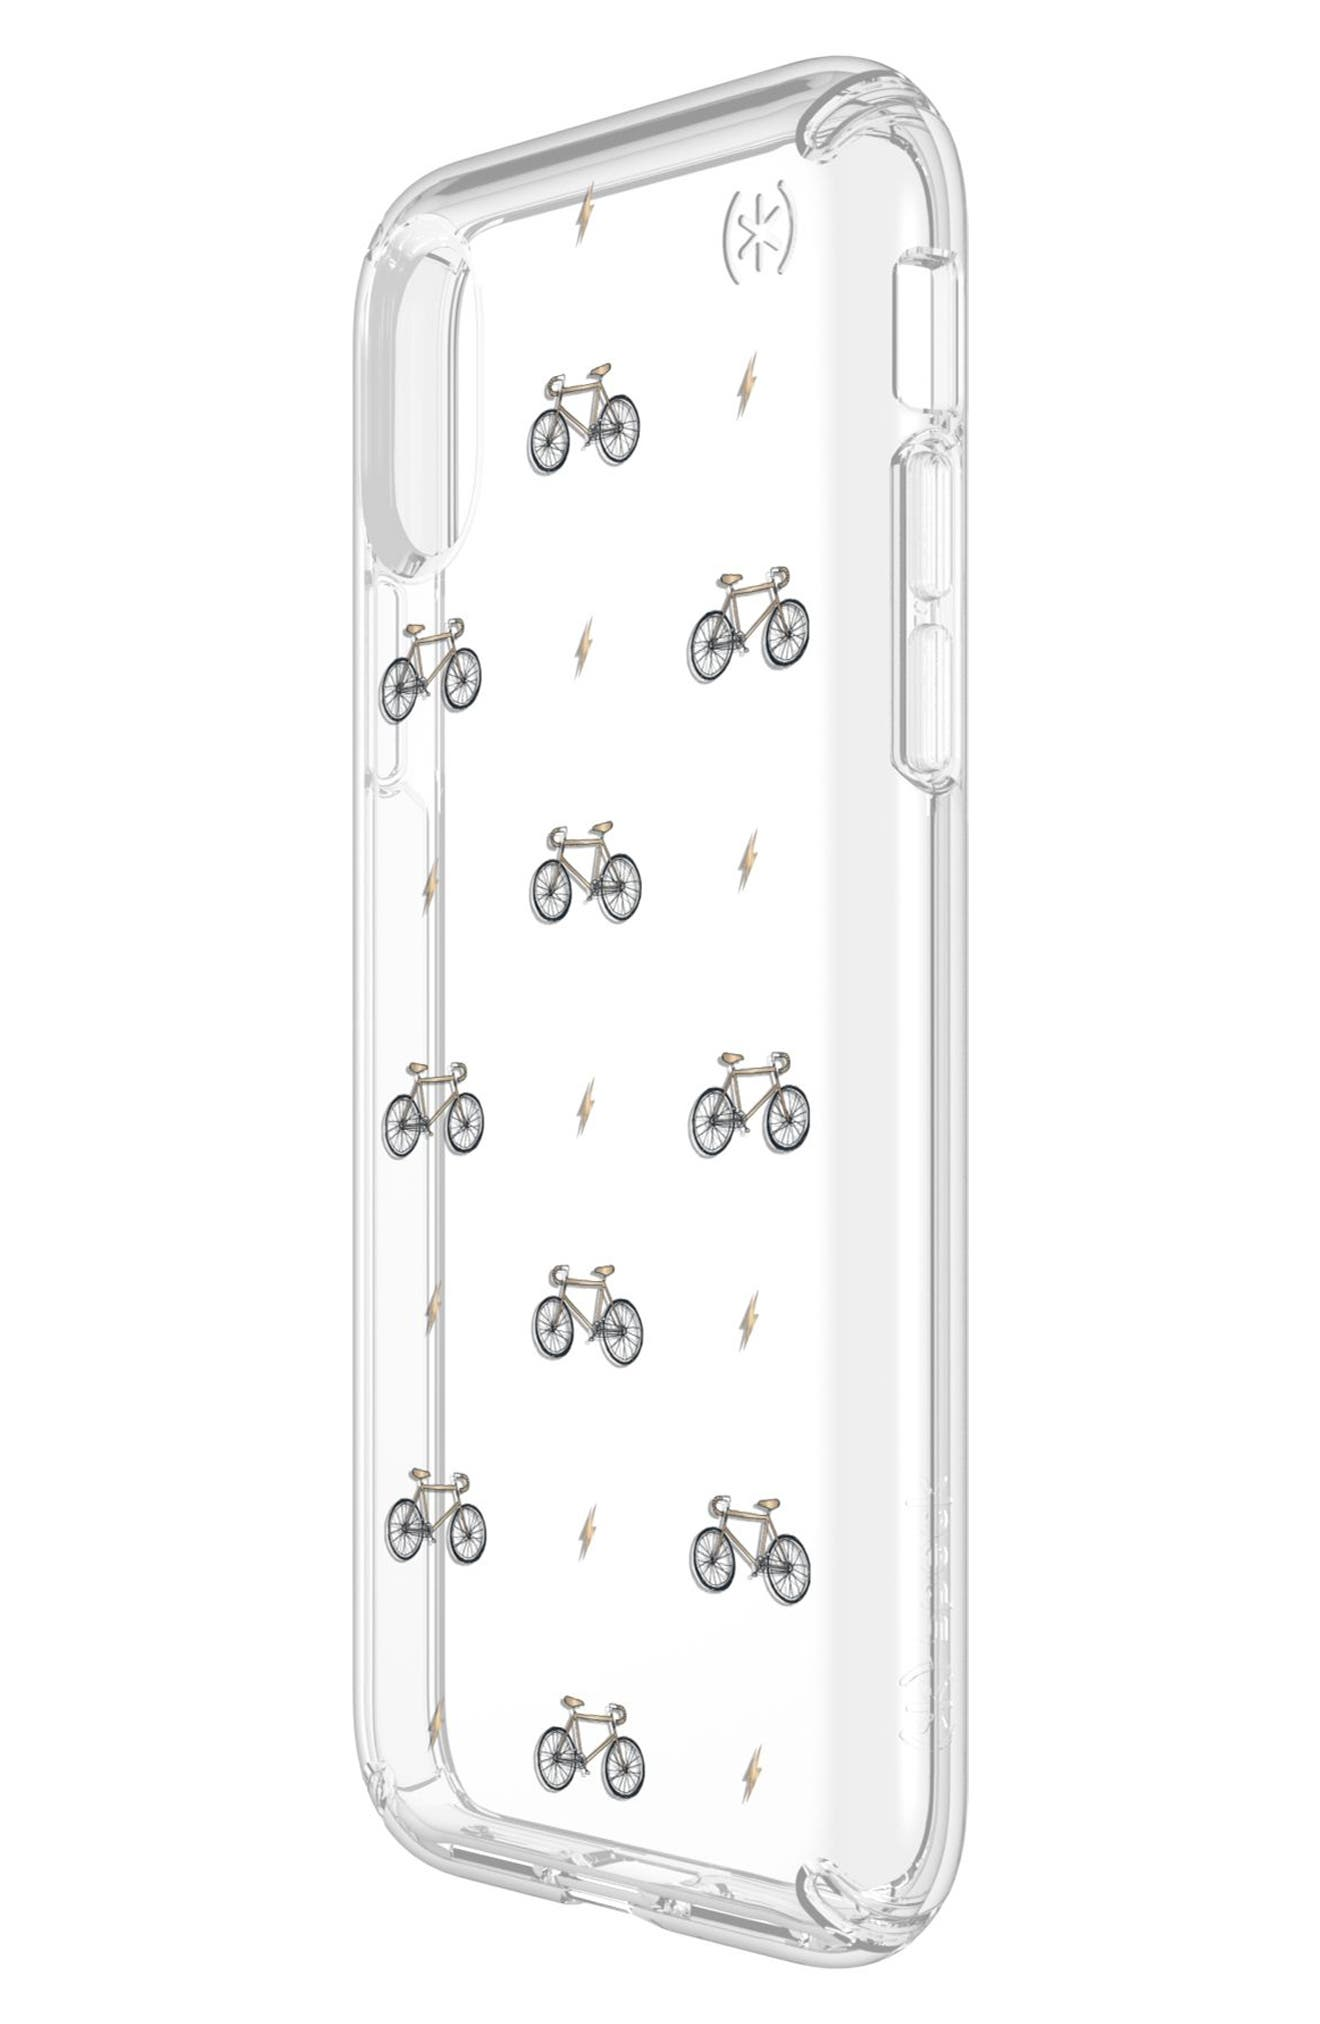 Bikes & Bolts Transparent iPhone X & Xs Case,                             Alternate thumbnail 5, color,                             BIKES N BOLTS YELLOW/ CLEAR